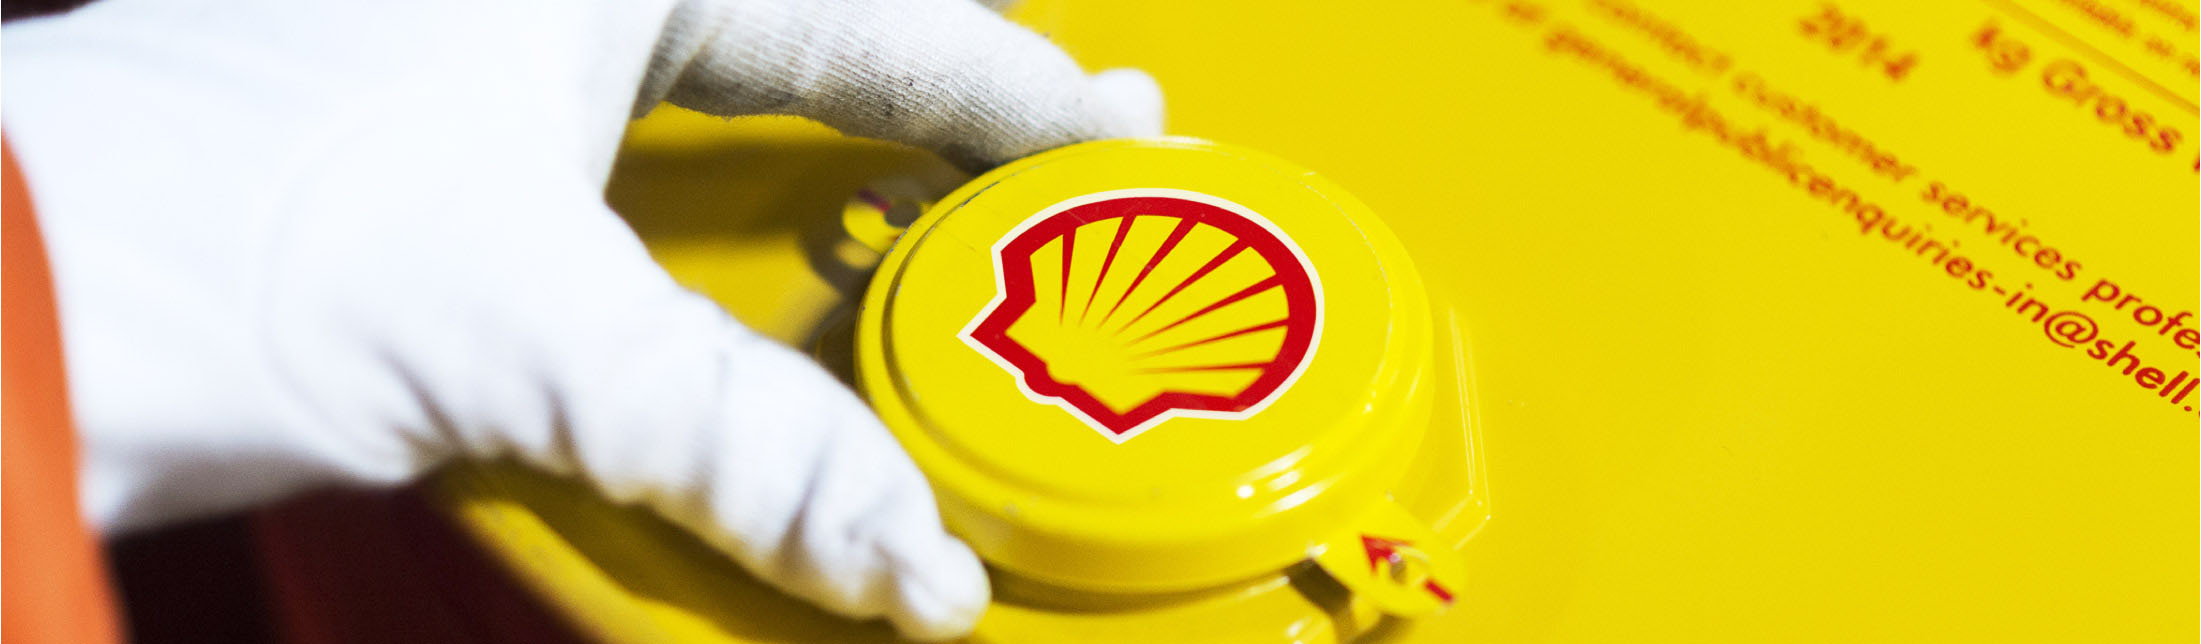 Shell, leader mondial des lubrifiants